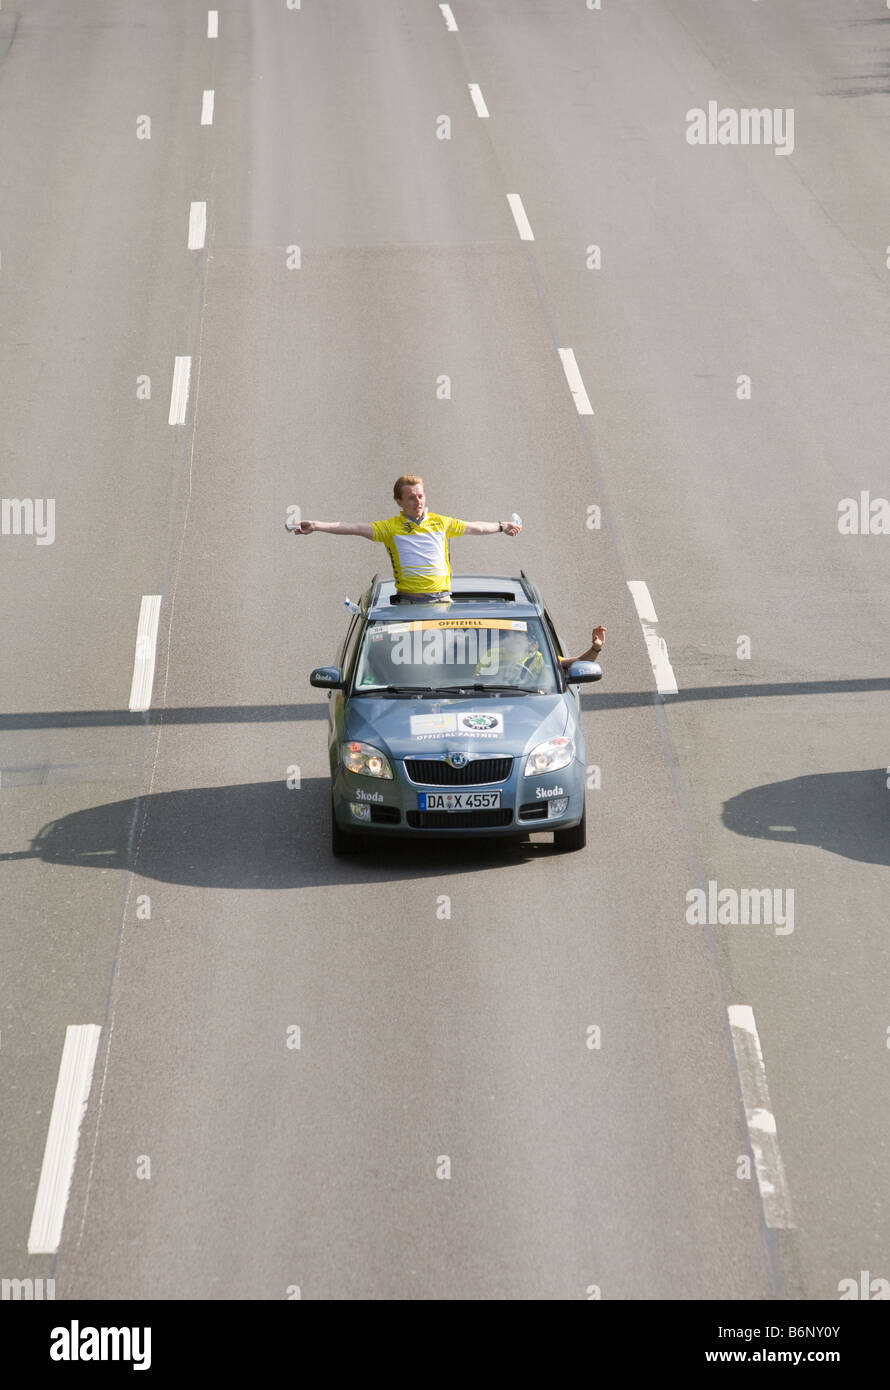 A escort car at the cycle race Deutschlandtour - Stock Image